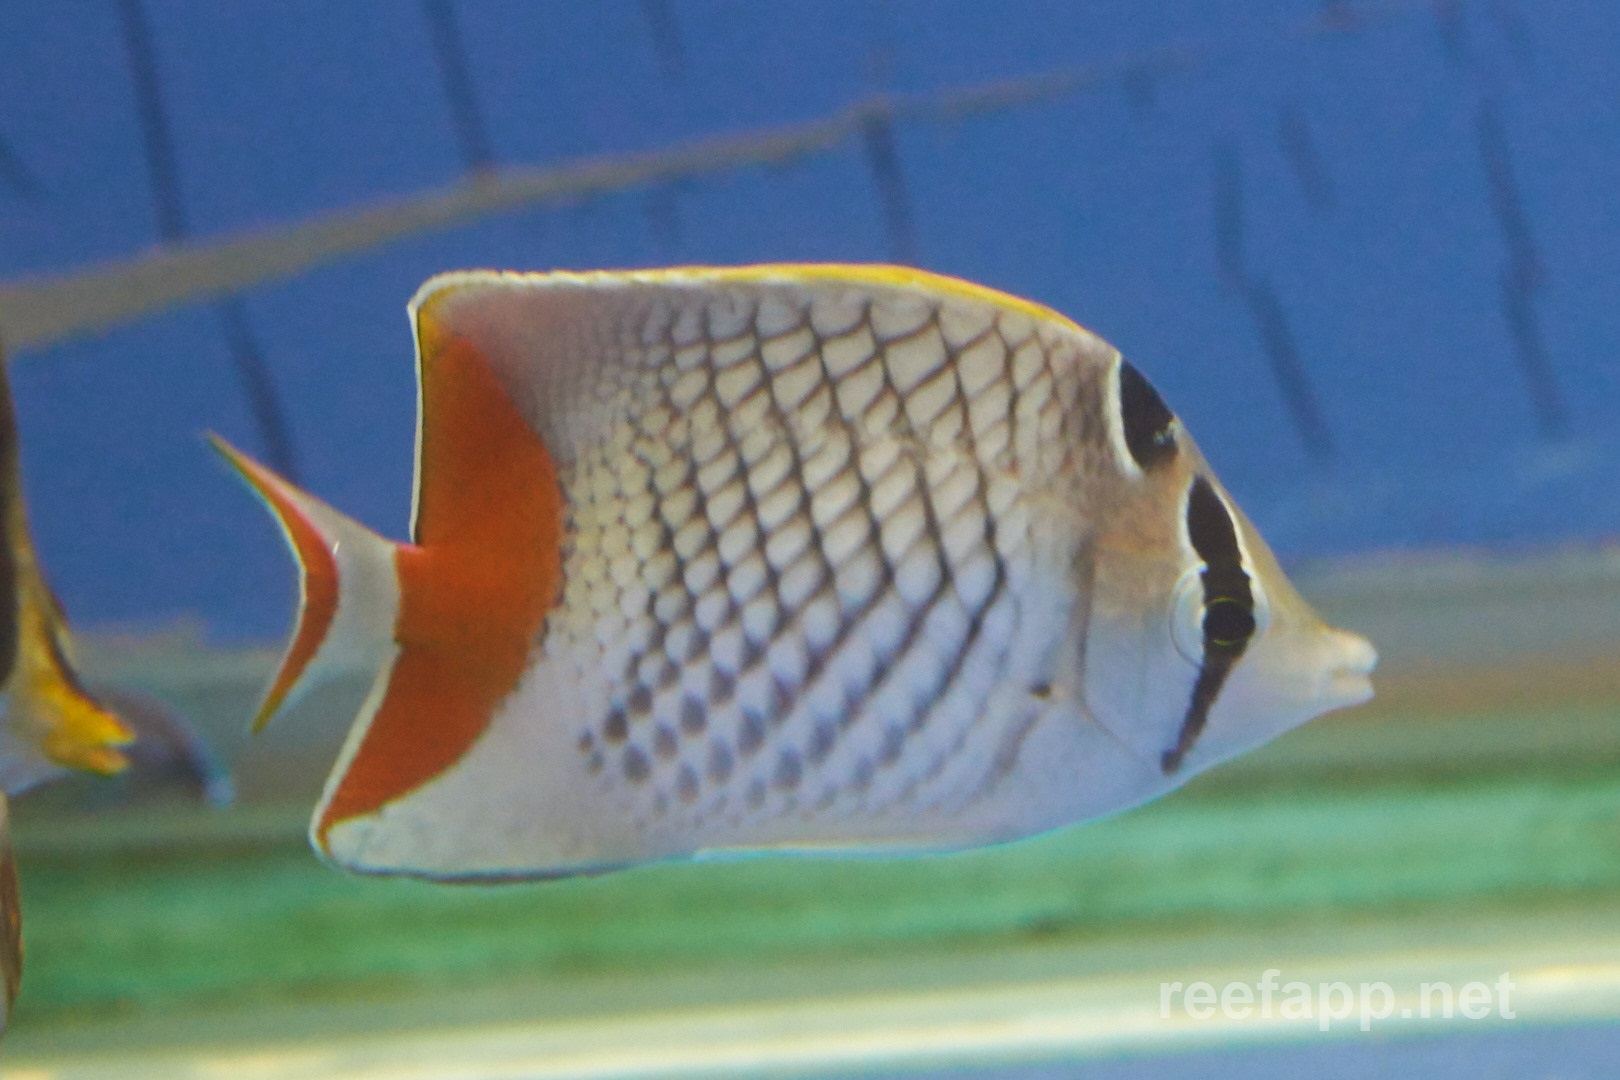 Pearlscale butterflyfish (Chaetodon xanthurus) in aquarium